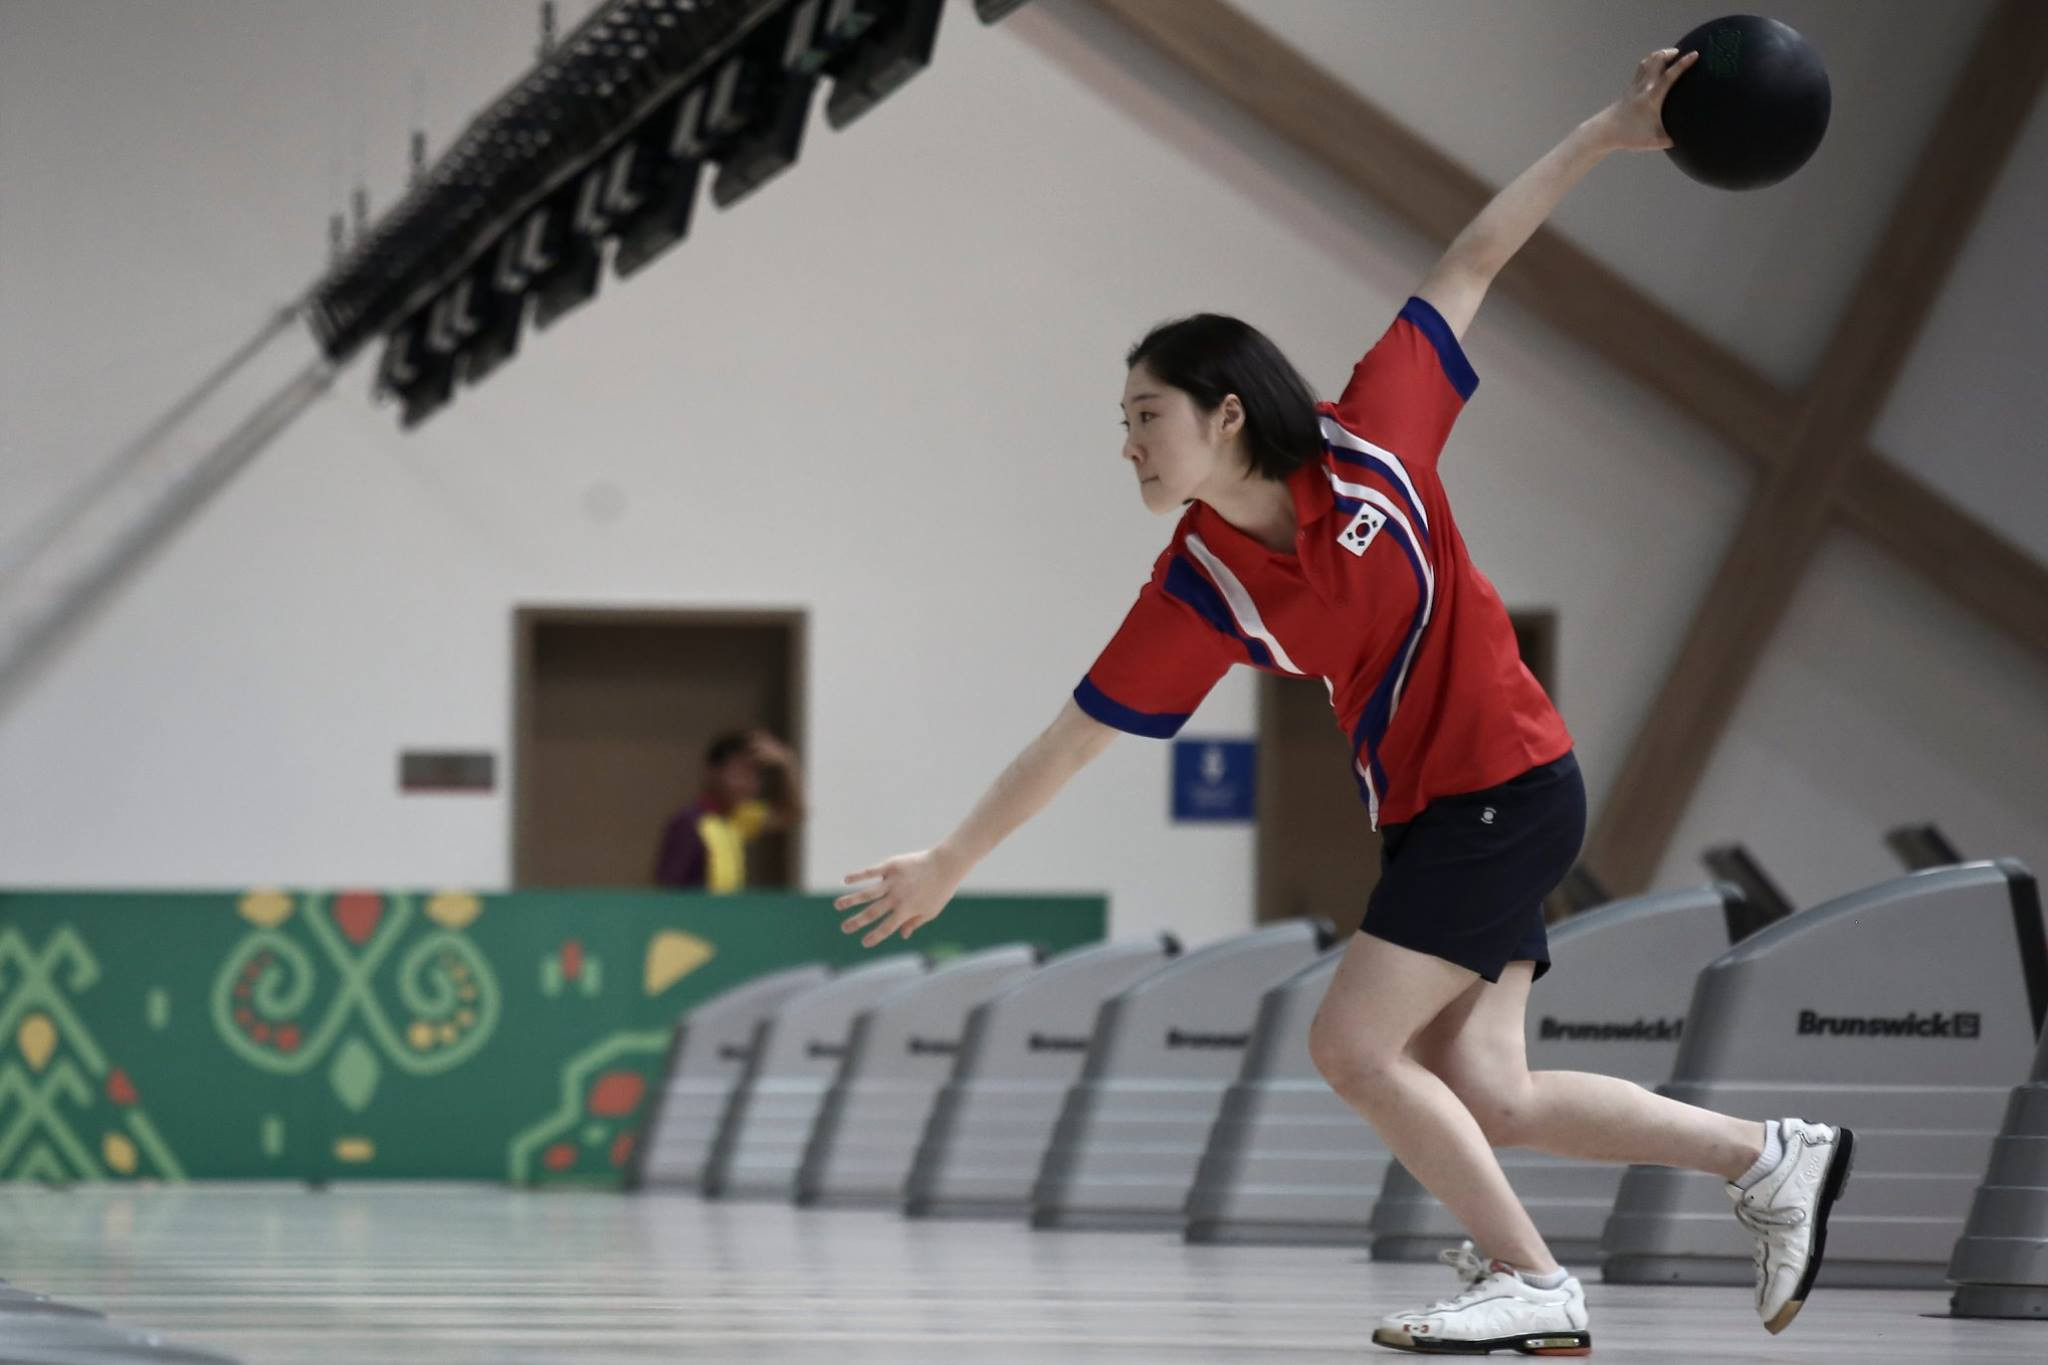 The women's doubles bowling event took place today ©Ashgabat 2017/Facebook